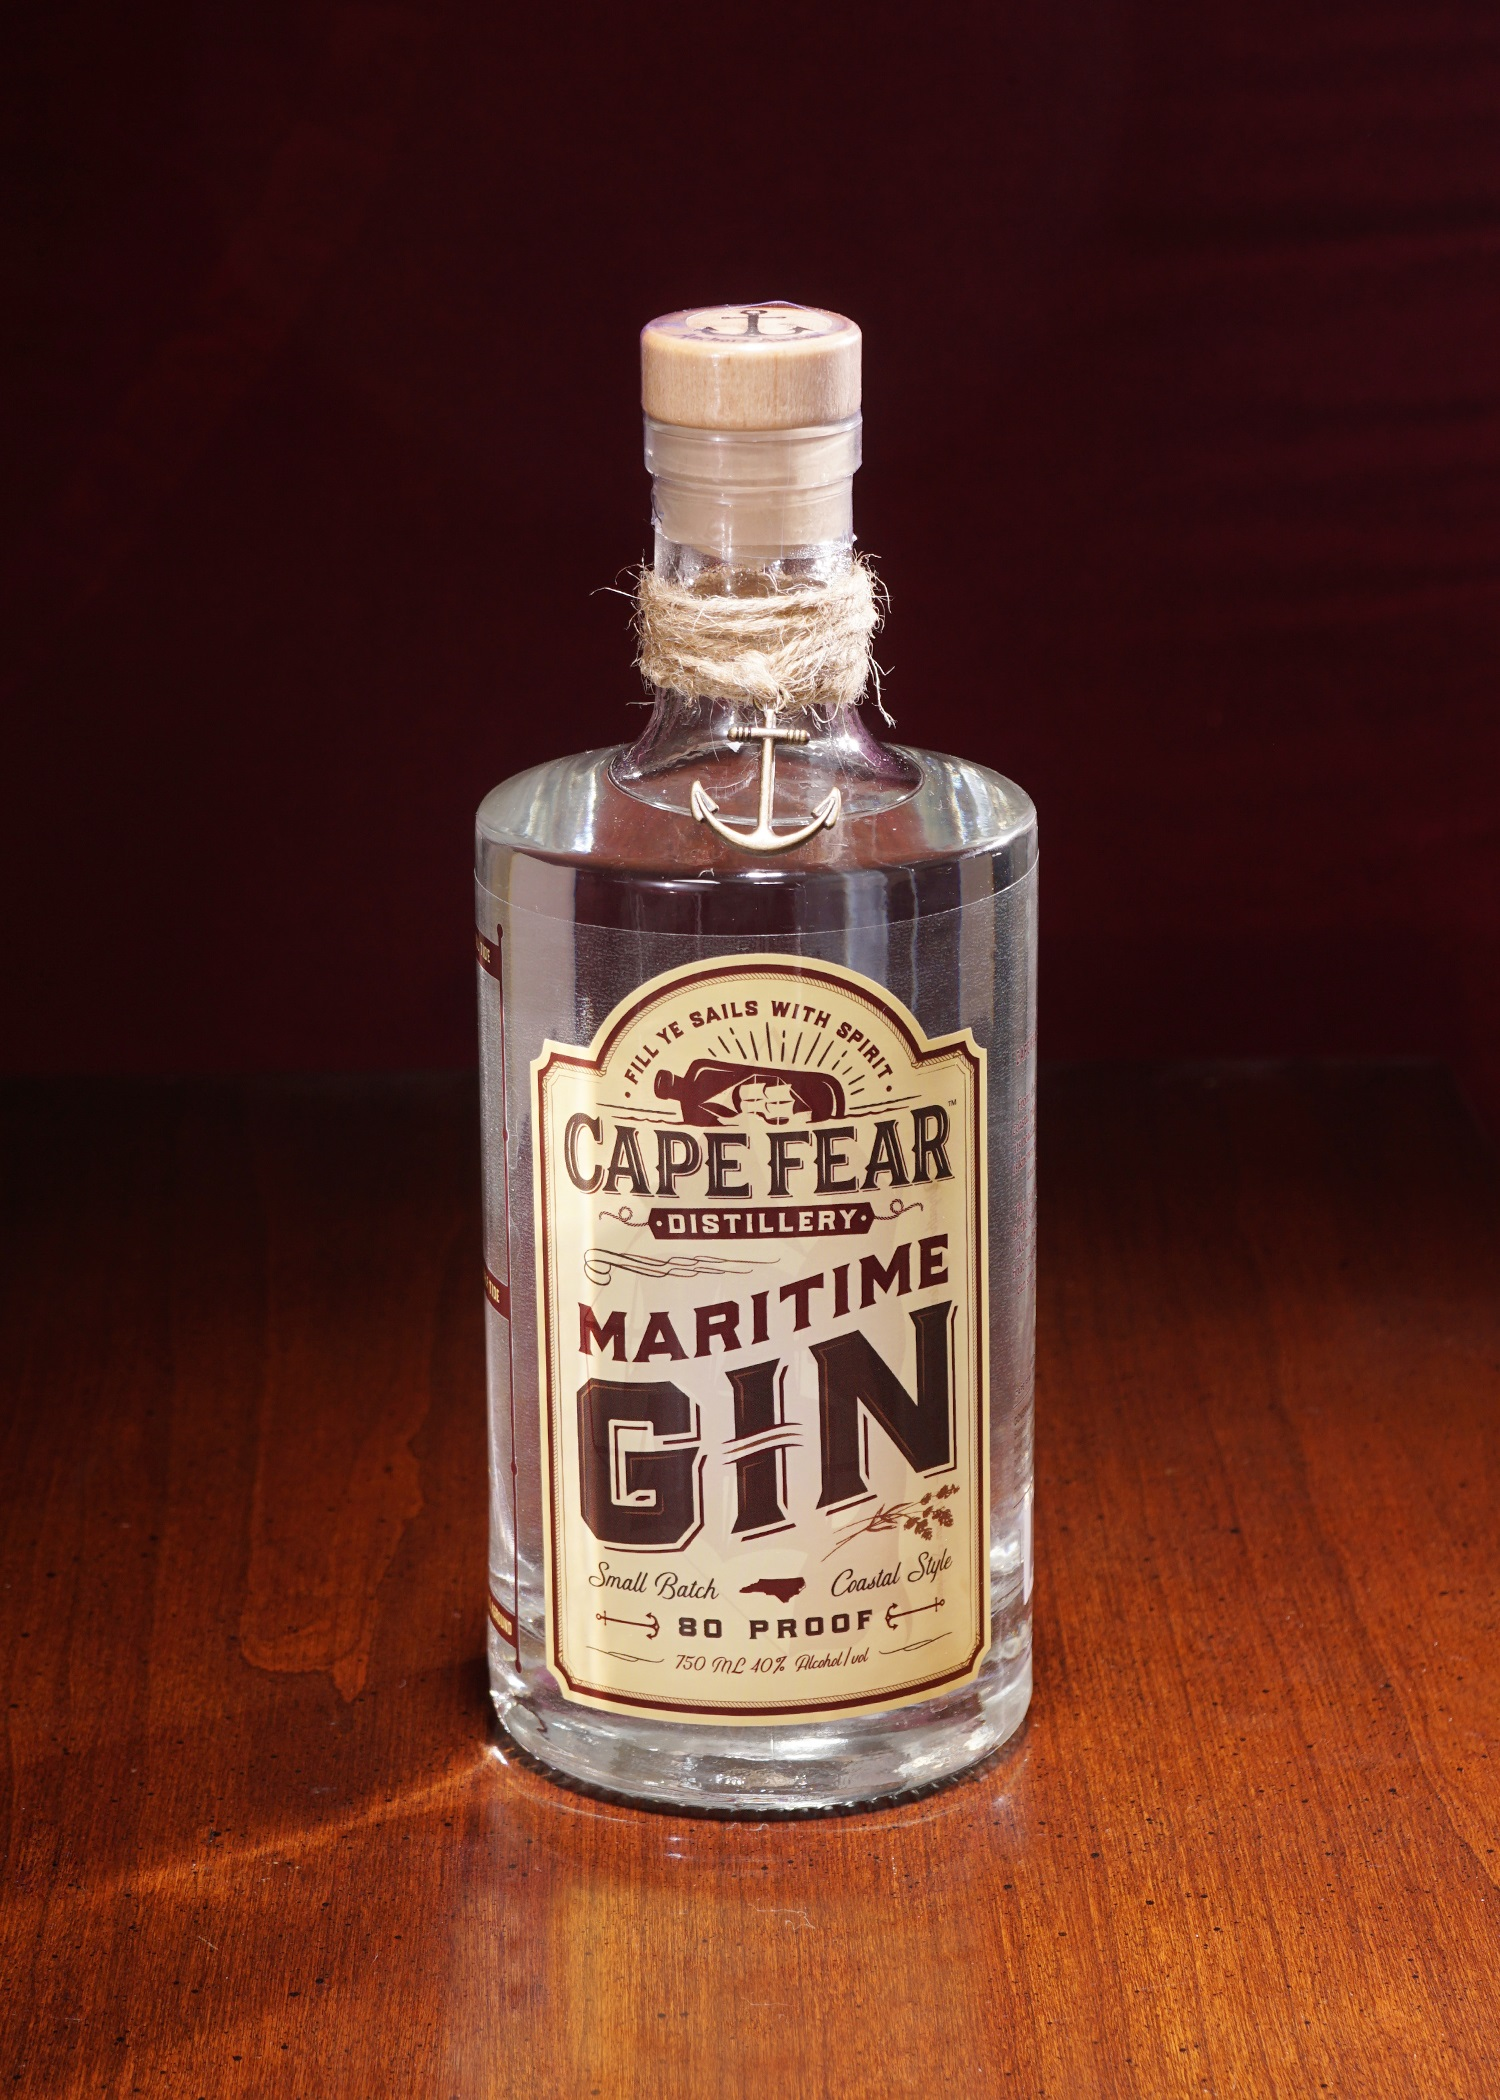 """Cape Fear Distiller's """"Maritime Gin"""" is available for purchase at the distillery and will be available in ABC stores soon. Tours at Cape Fear Distillery are $5 and include a free gin tasting."""